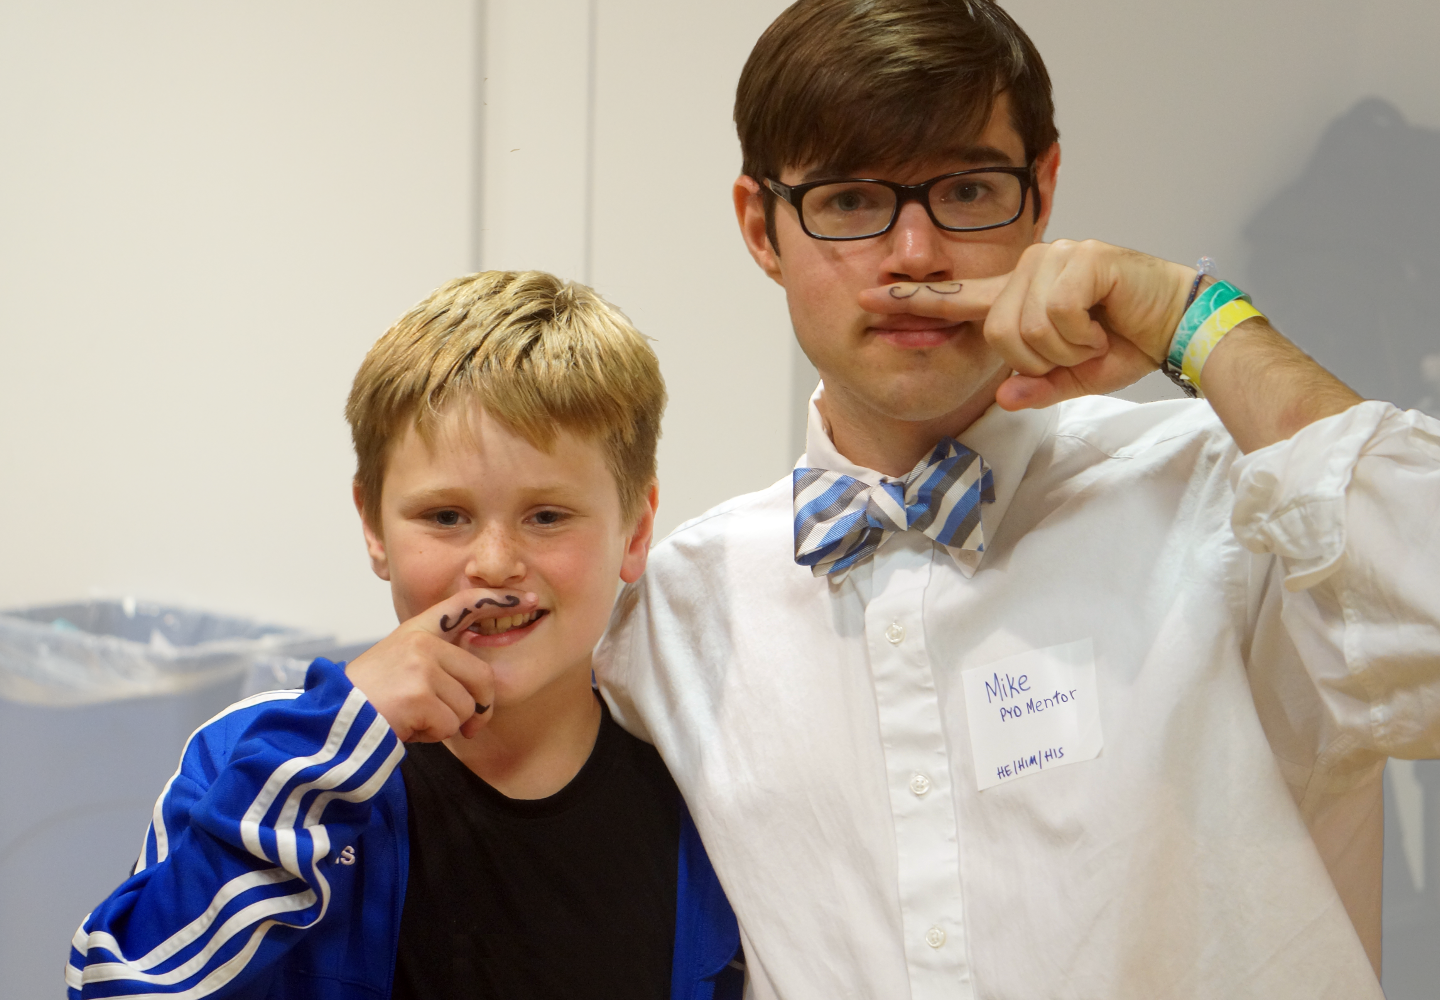 A young boy and his mentor make goofy faces at the camera